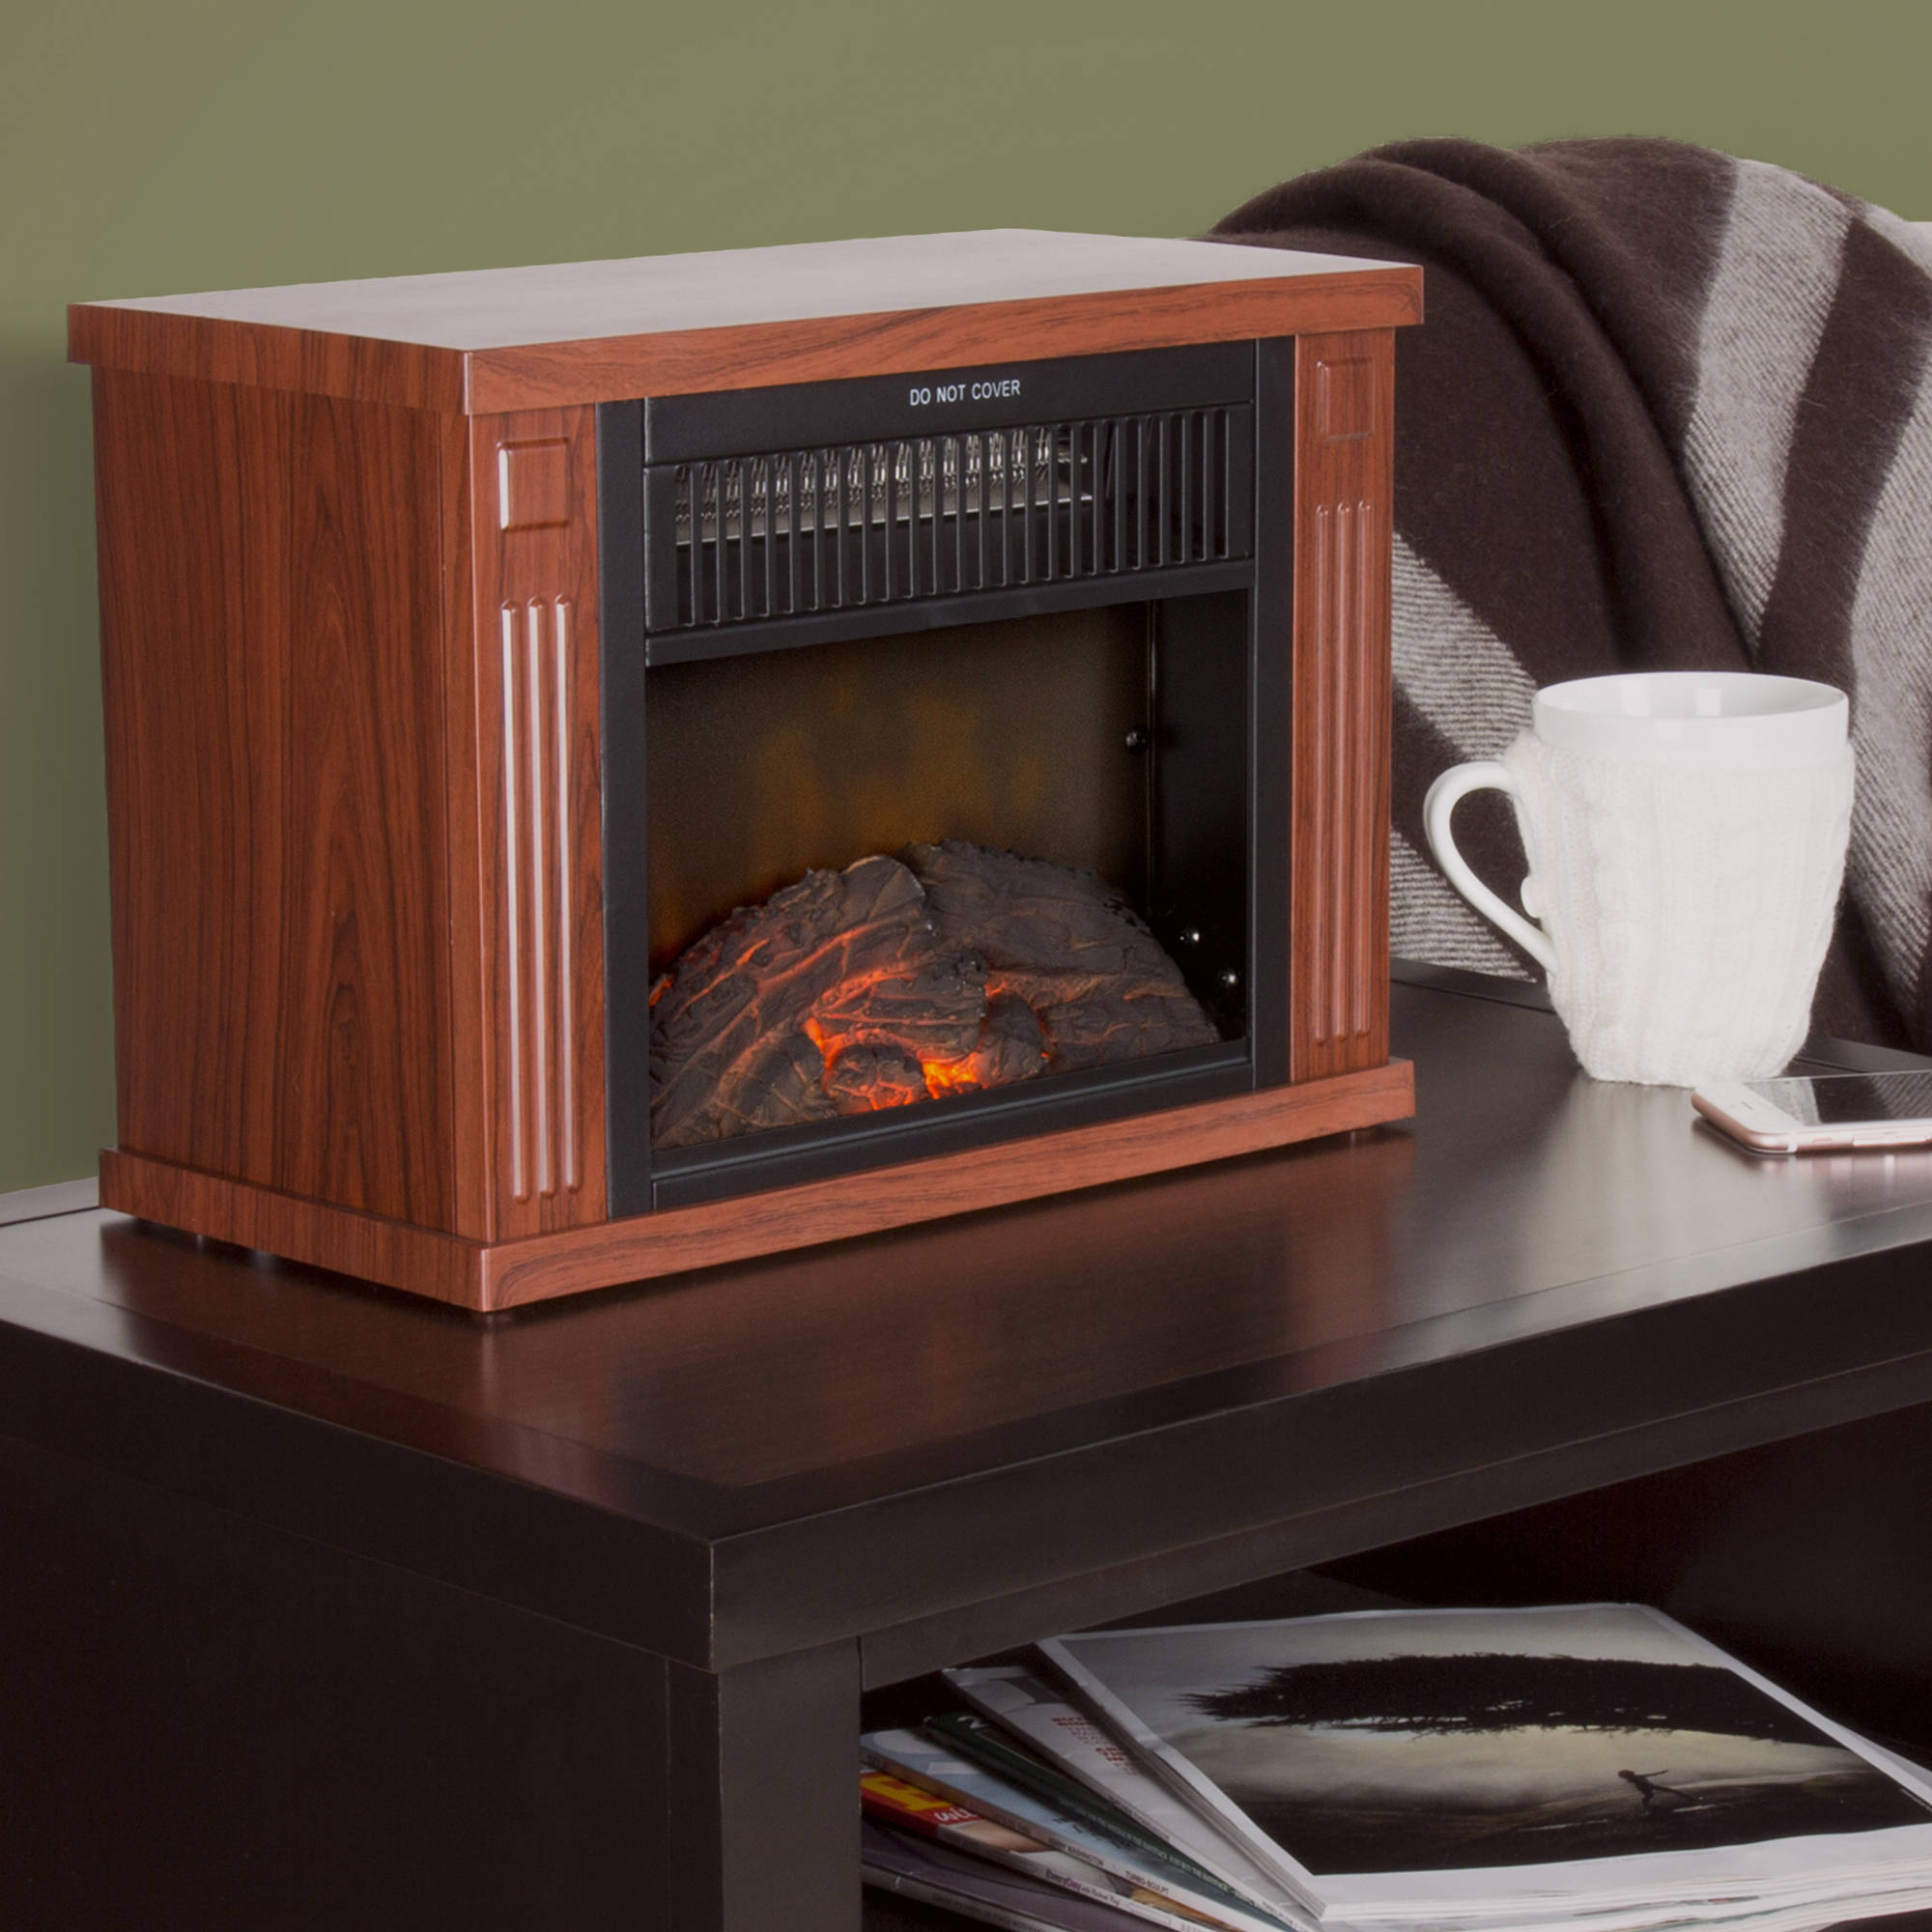 Superbe Northwest 13 034 Portable Mini Electric Fireplace Heater